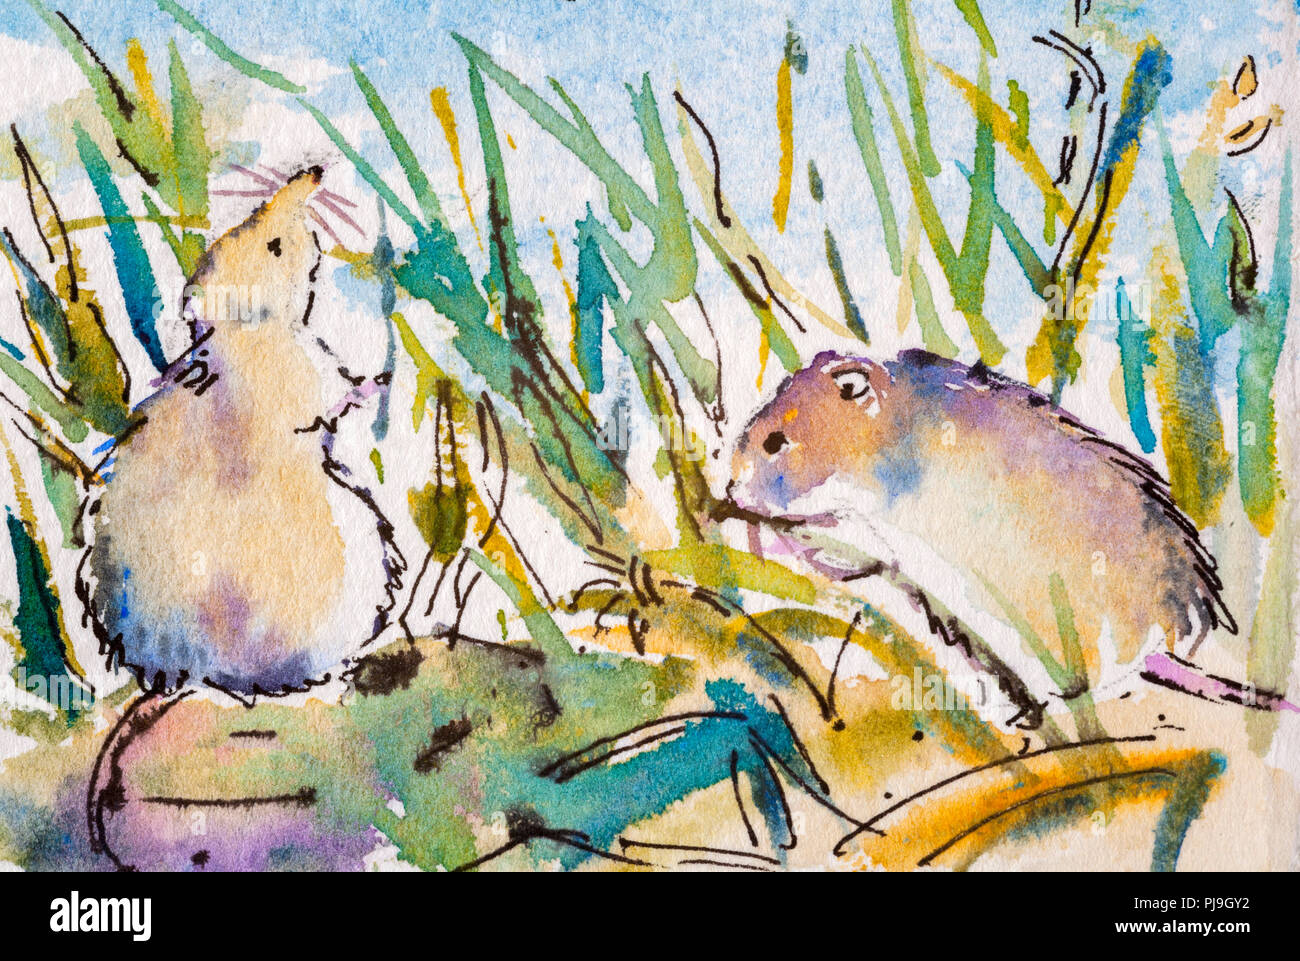 Details of watercolour painting studies for a wildlife